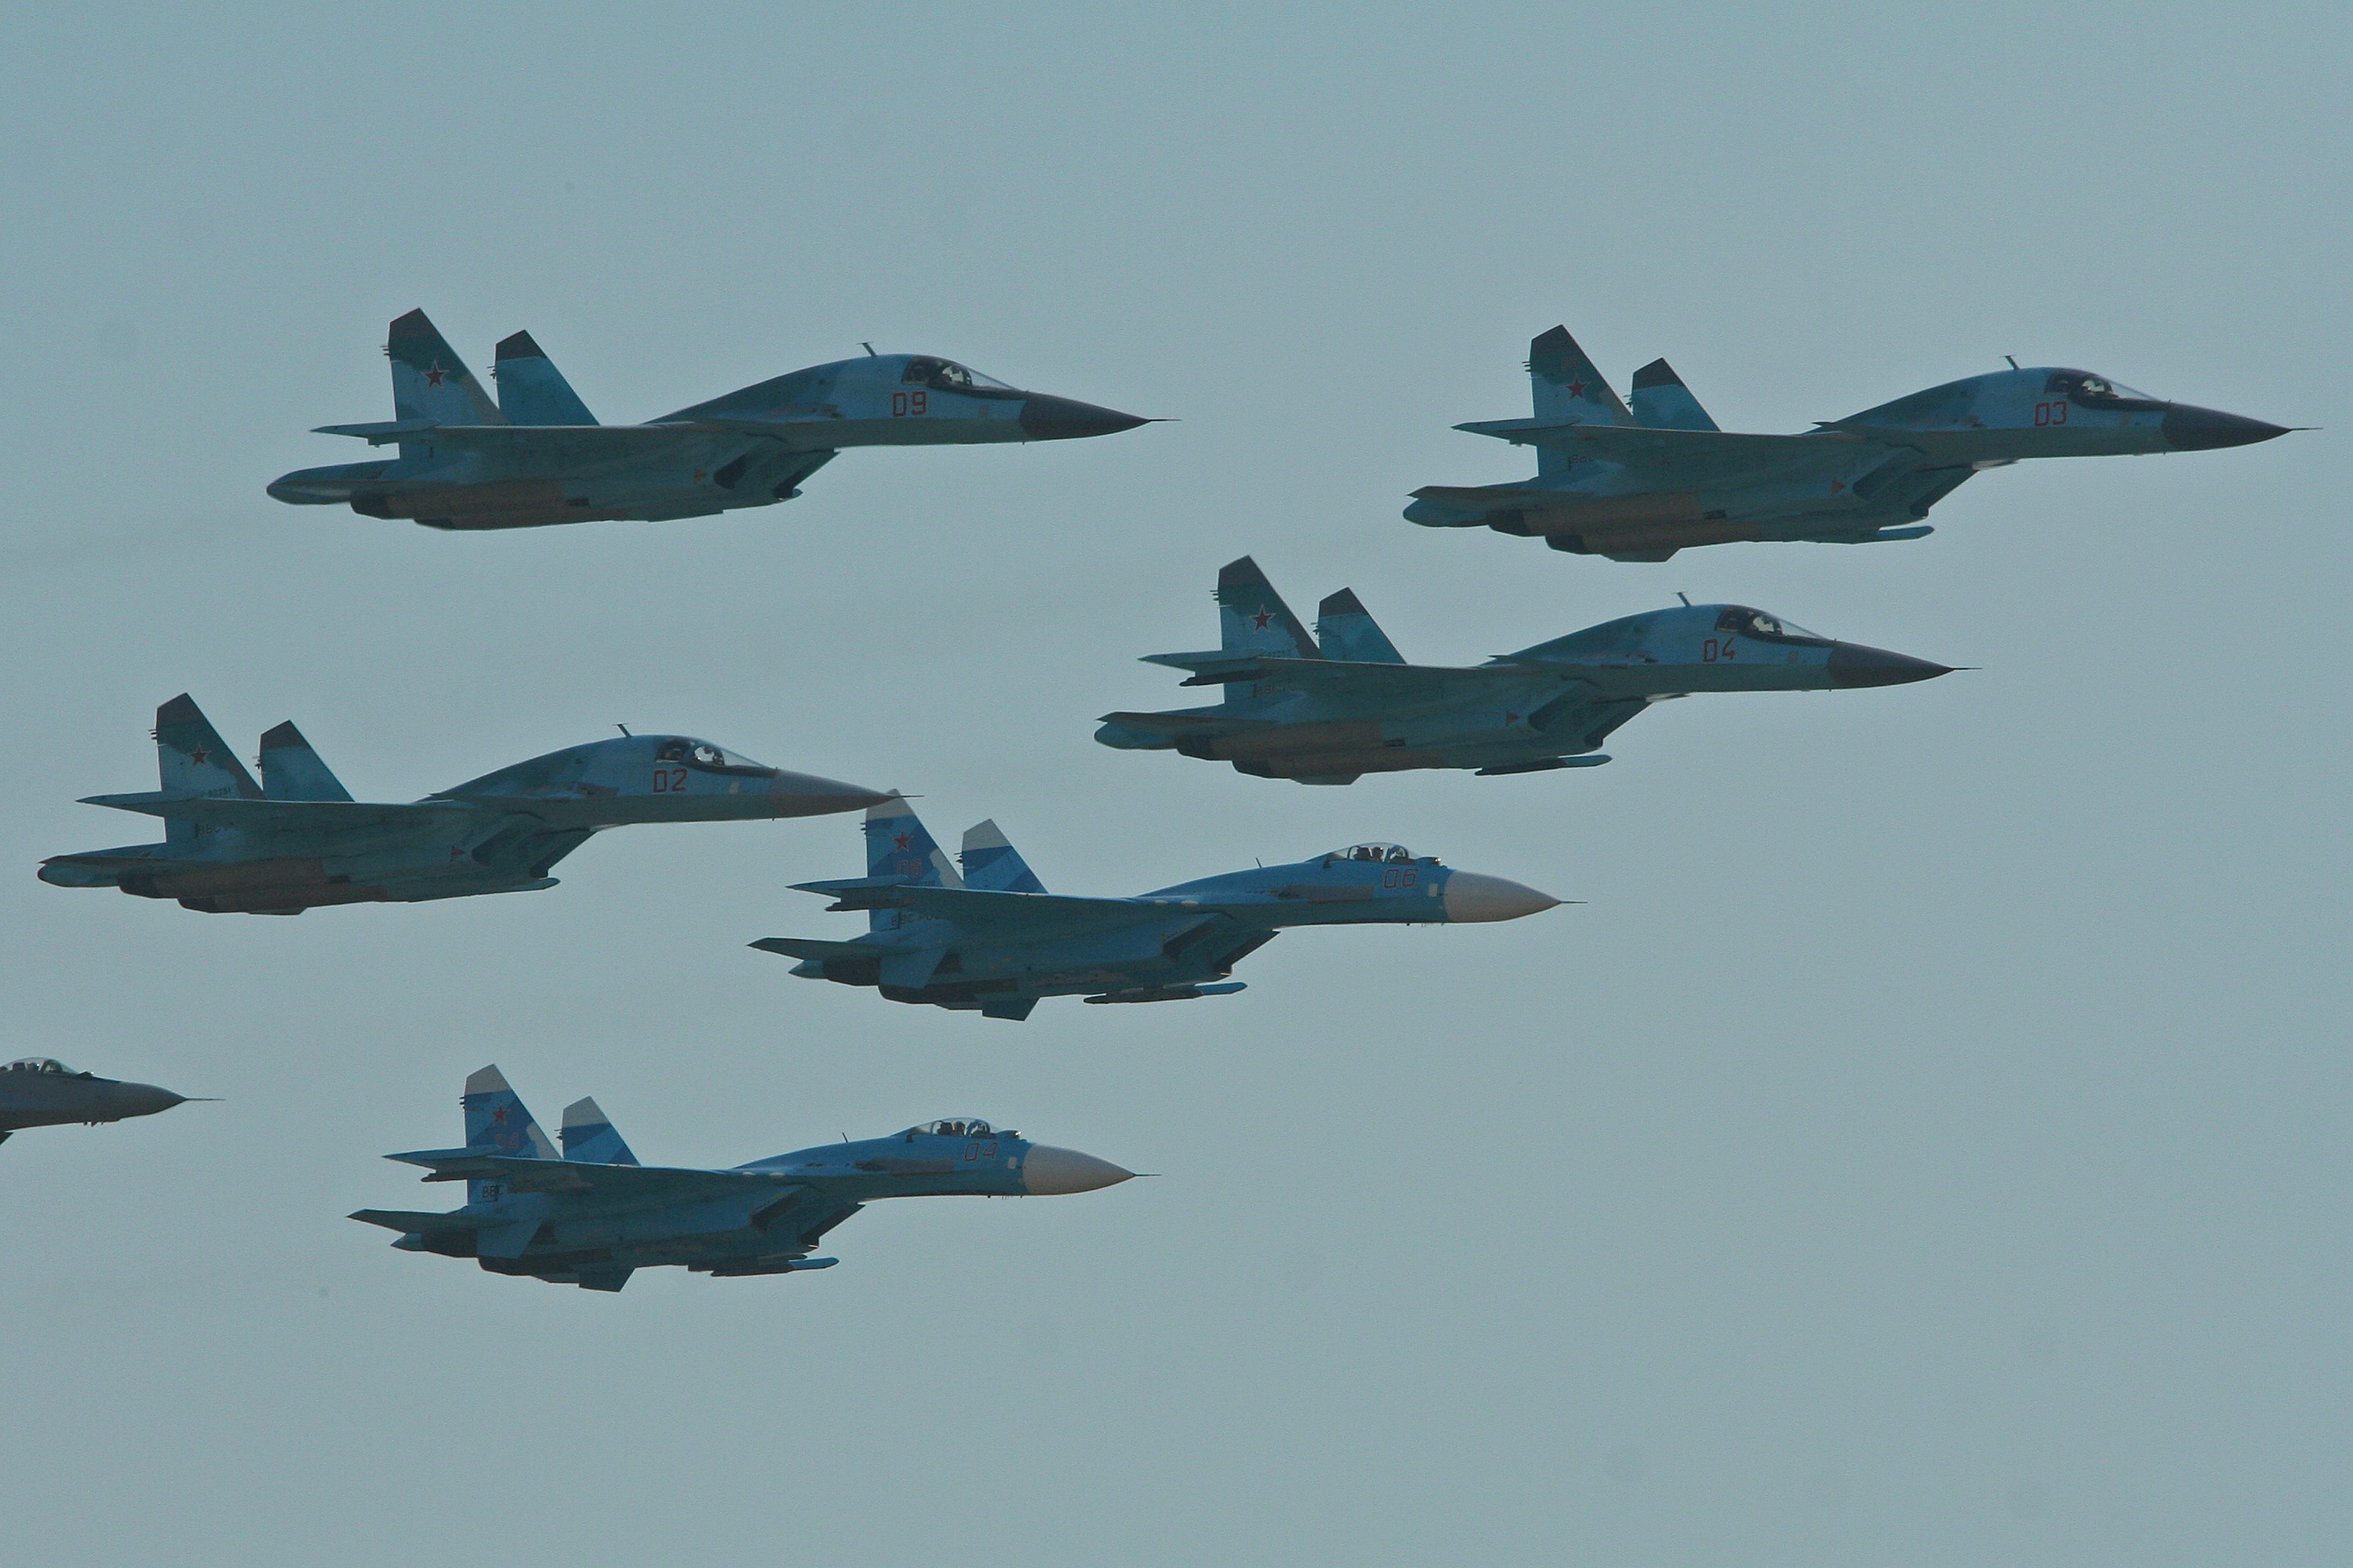 File:Russian Air Force fighter formation - Zhukovsky 2012 (8724698862).jpg - Wikimedia Commons